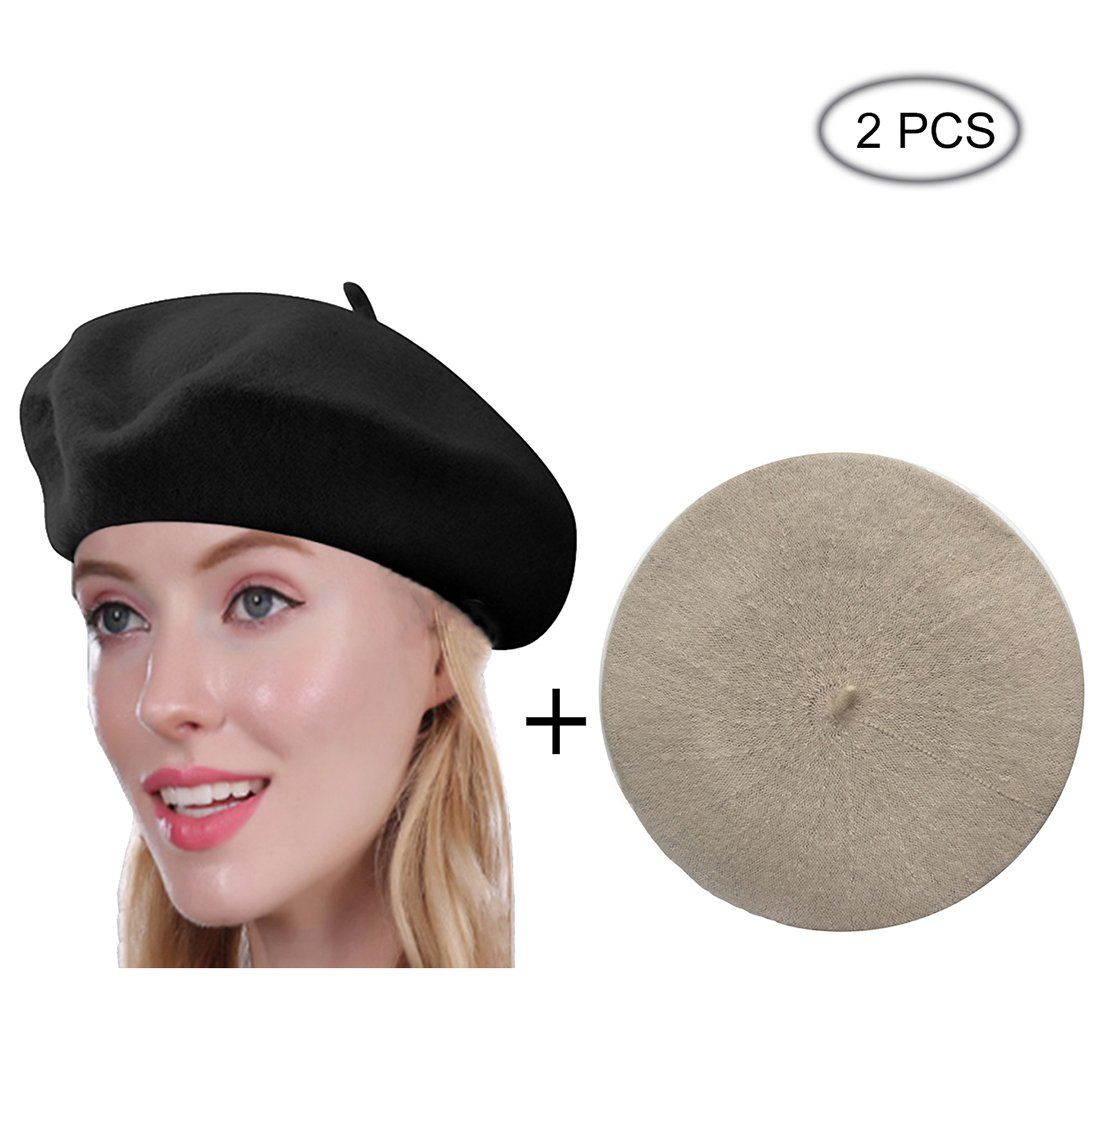 Raylarnia Beret Hat of French Vintage Style, Elegant Soft Stretch Wool Cap, Lightweight Classic Boinas Winter Beanie (Black/Beige)